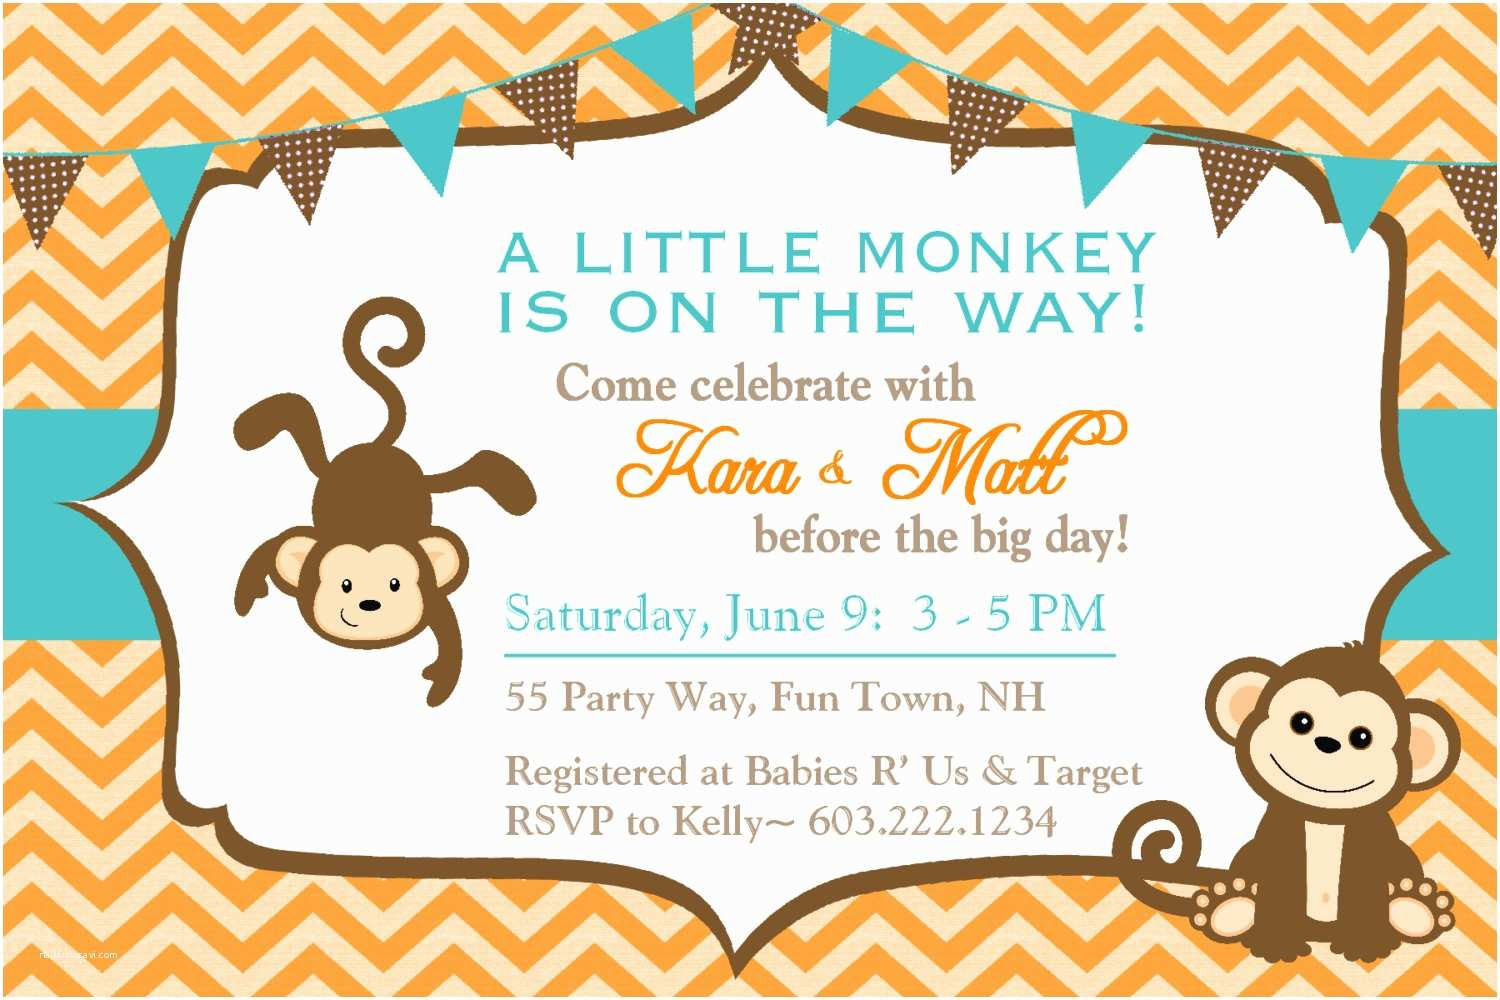 Monkey Baby Shower Invitations Monkey Baby Shower Invitations Chevron Teal orange Brown